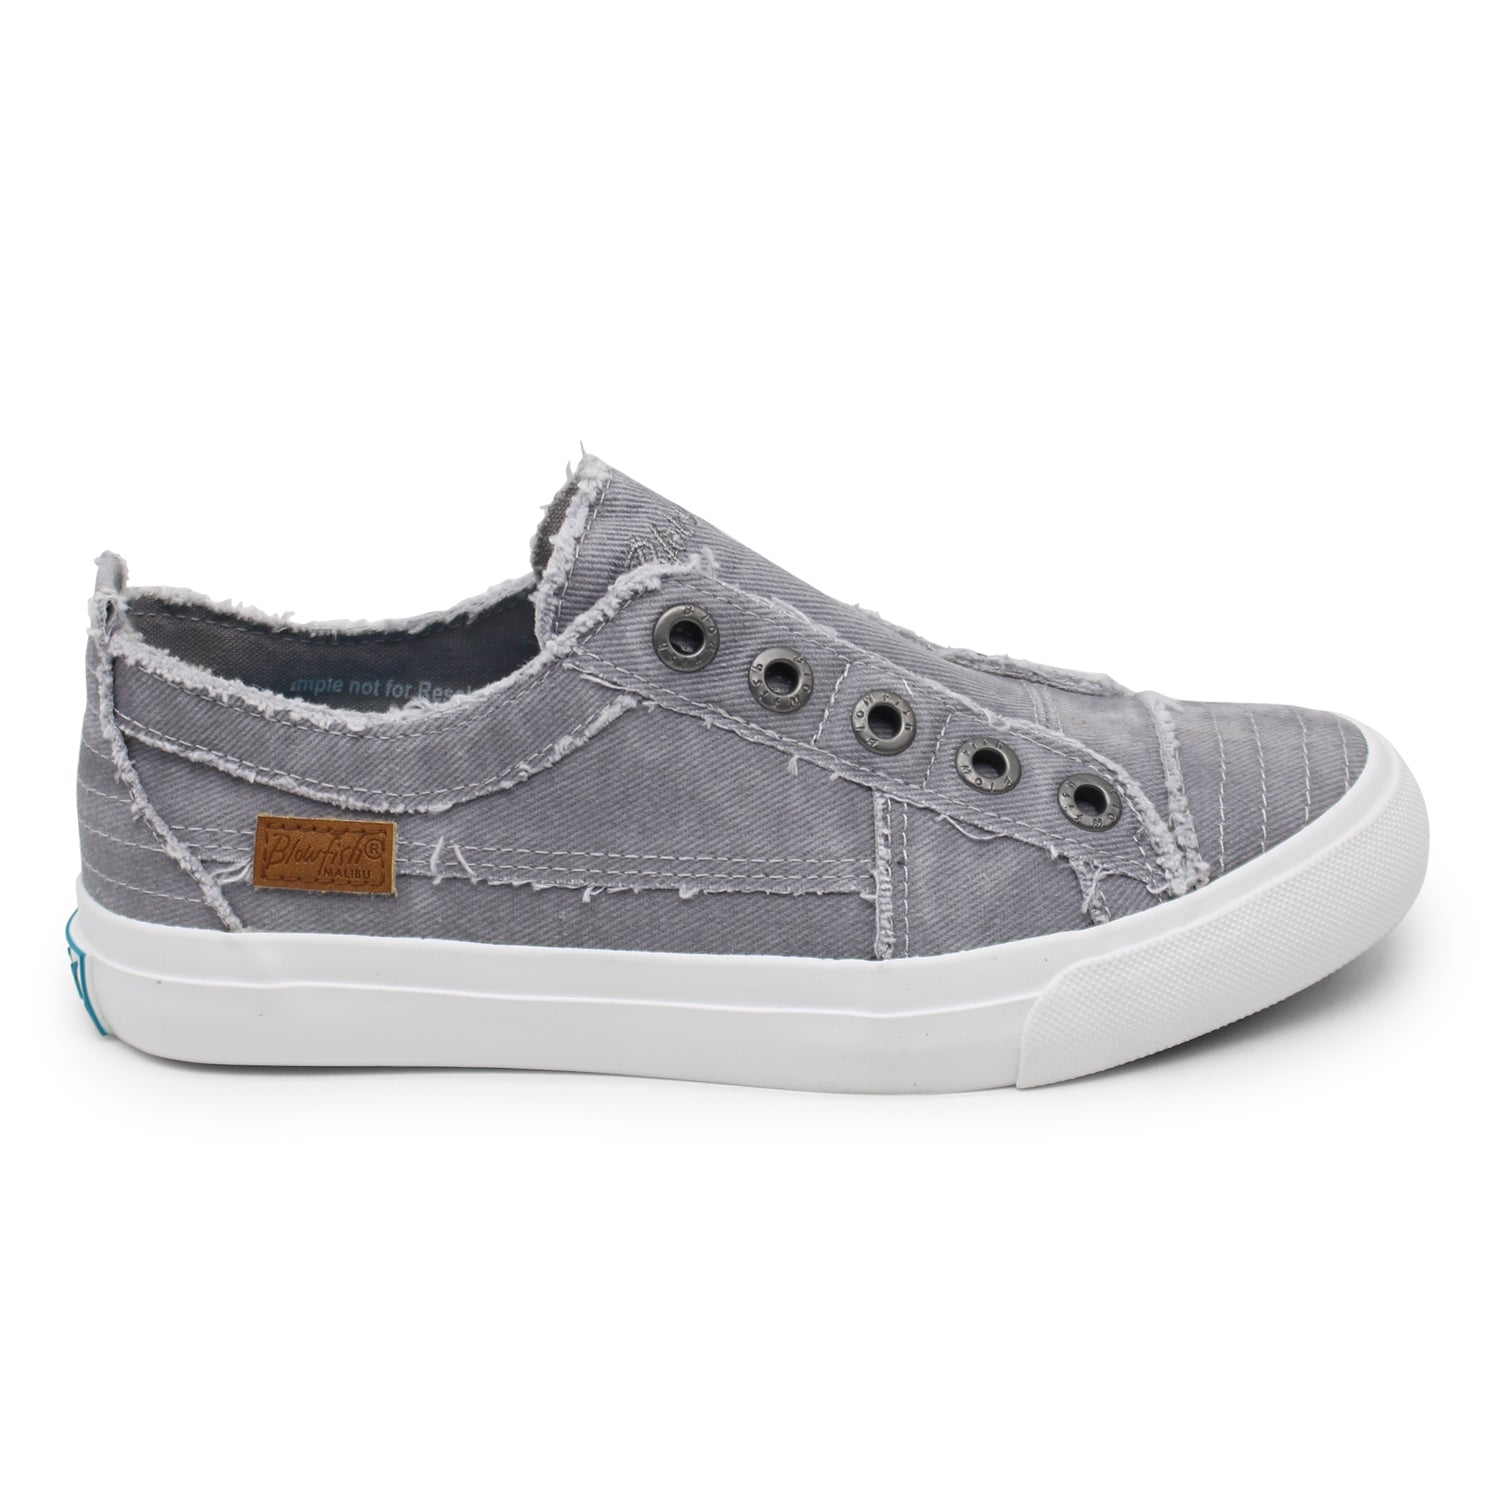 light gray blowfish play sneakers